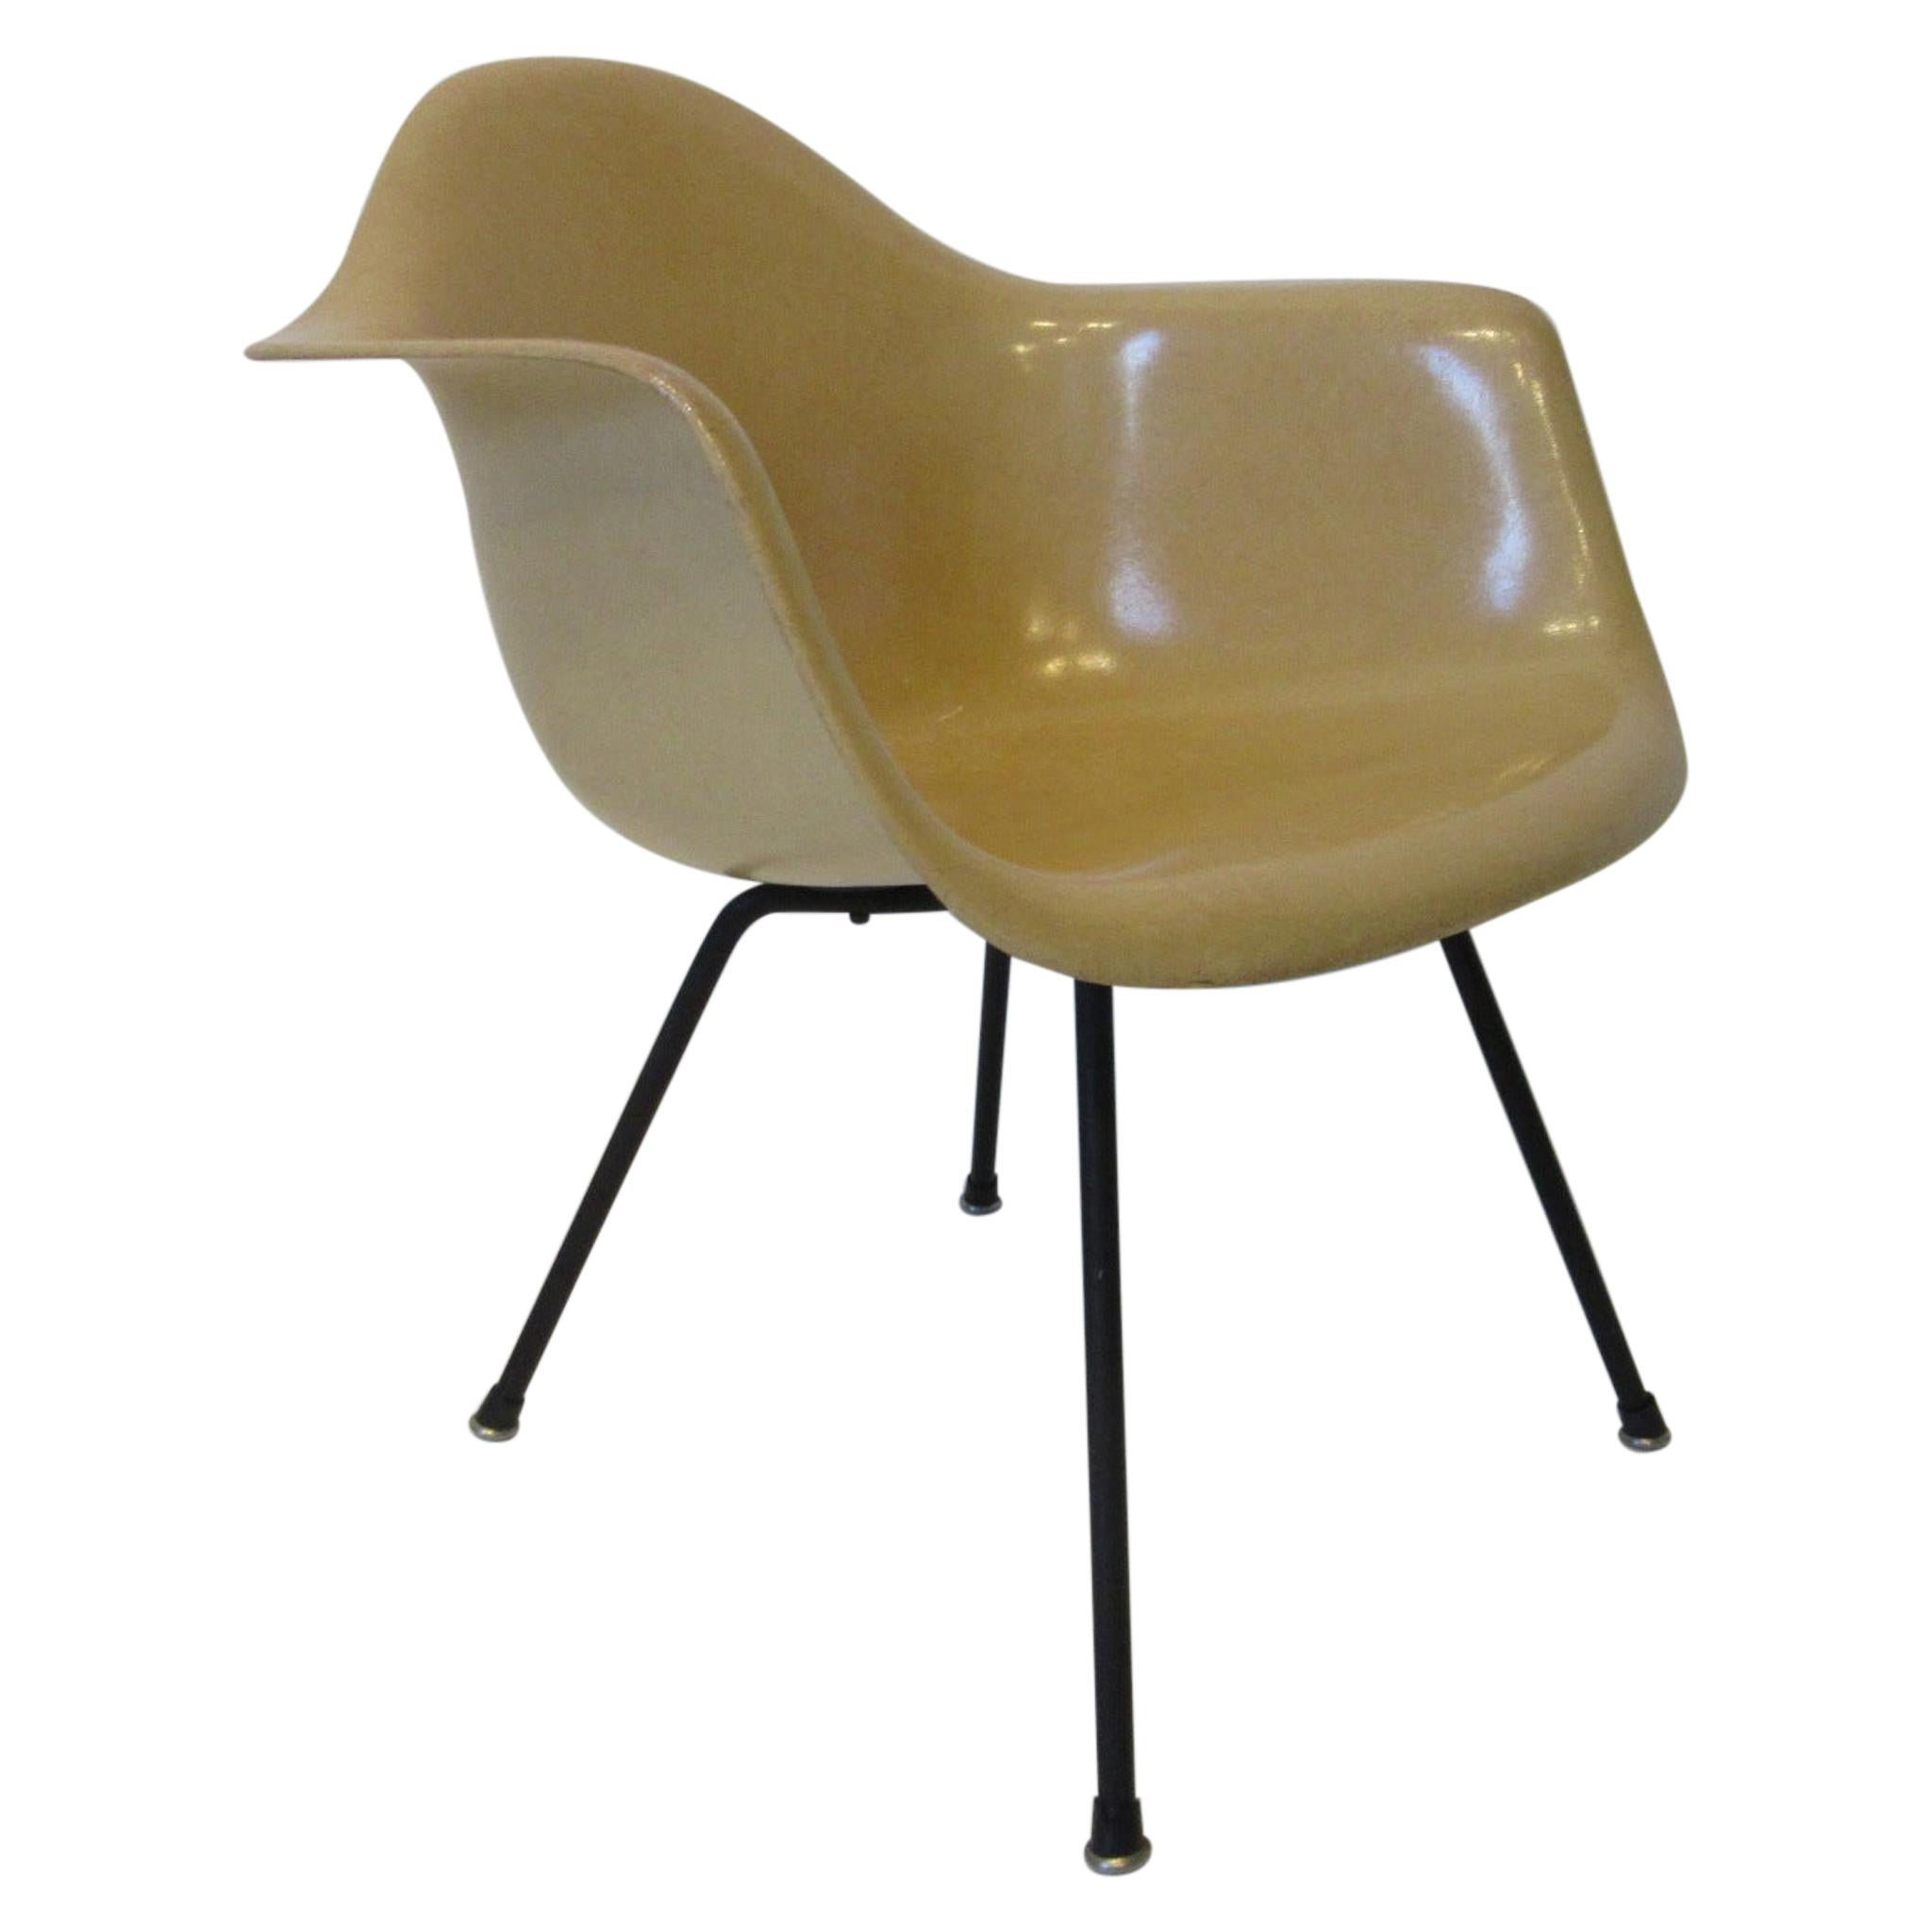 Early Eames Armshell Lounge Height Chair by Herman Miller